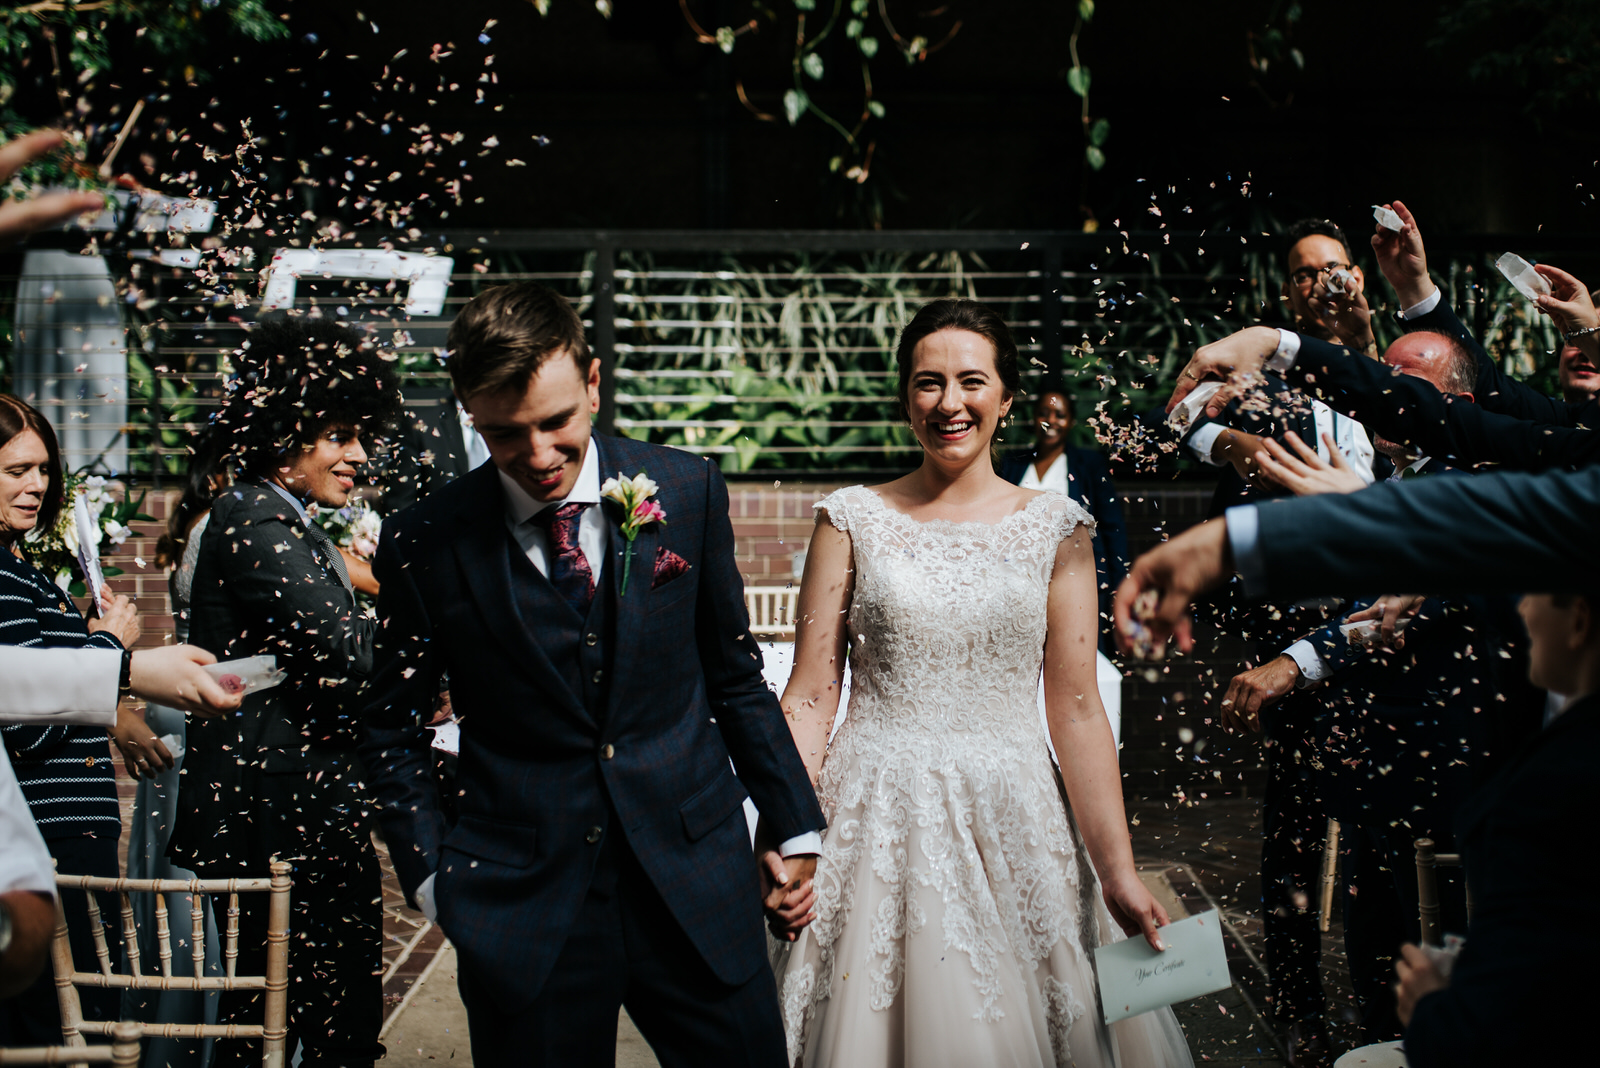 Bride and groom exit down the aisle as husband and wife as guest